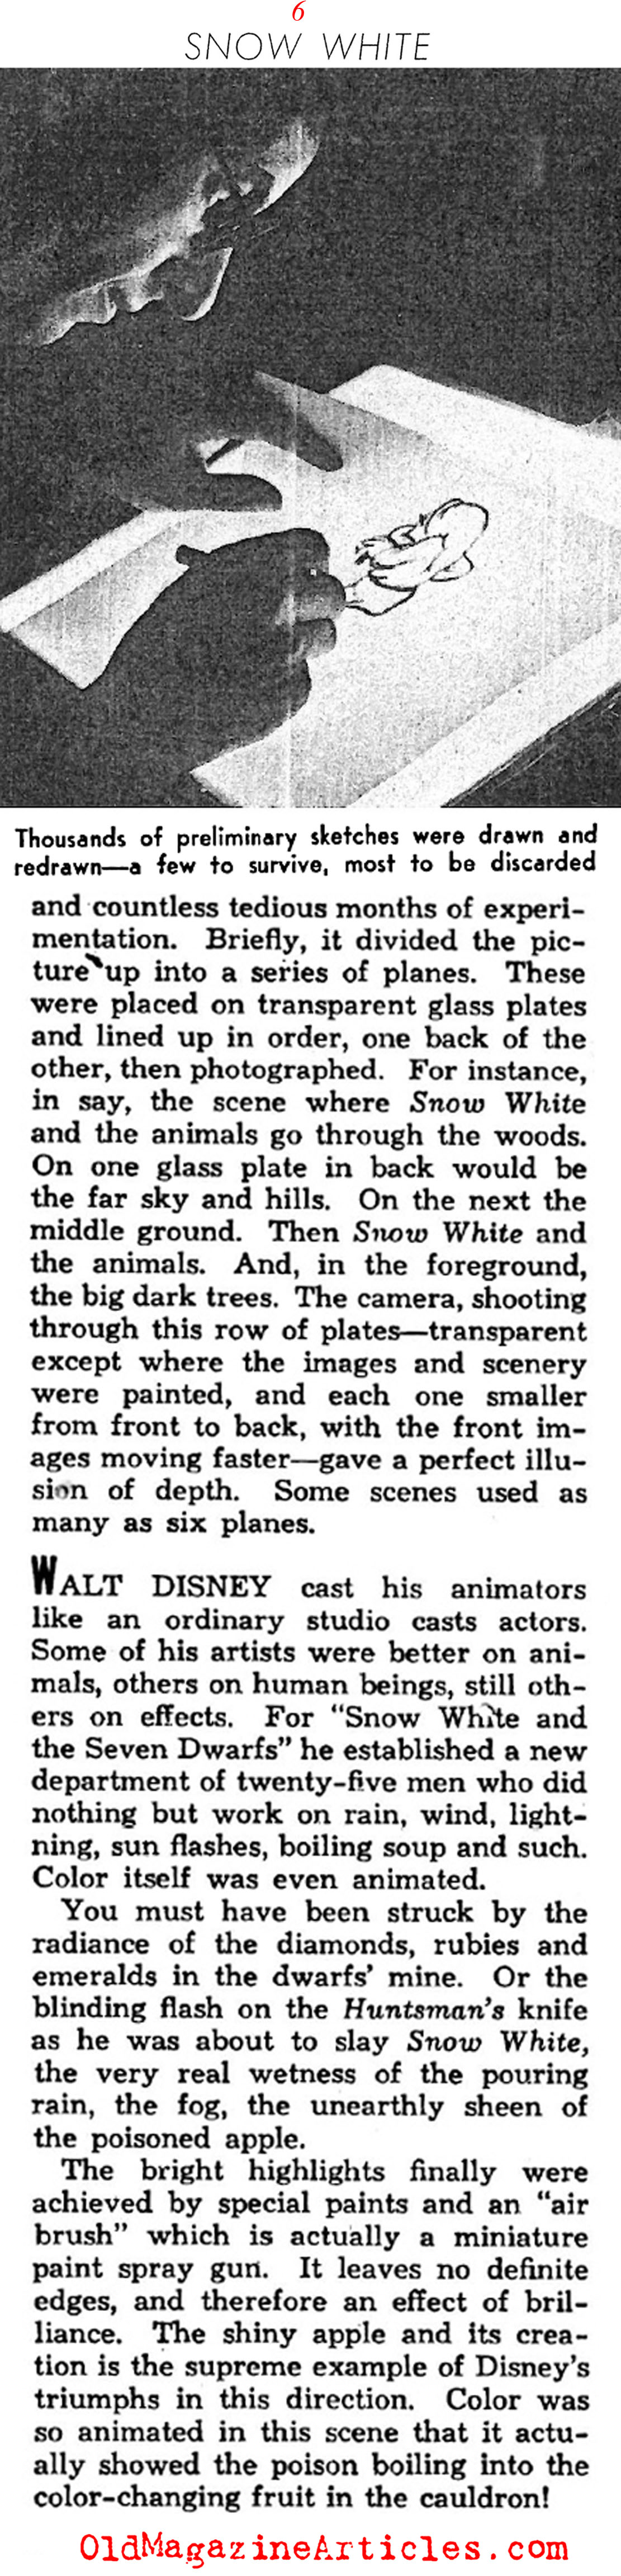 The Making of SNOW WHITE and the SEVEN DWARFS (Photoplay Magazine, 1938)